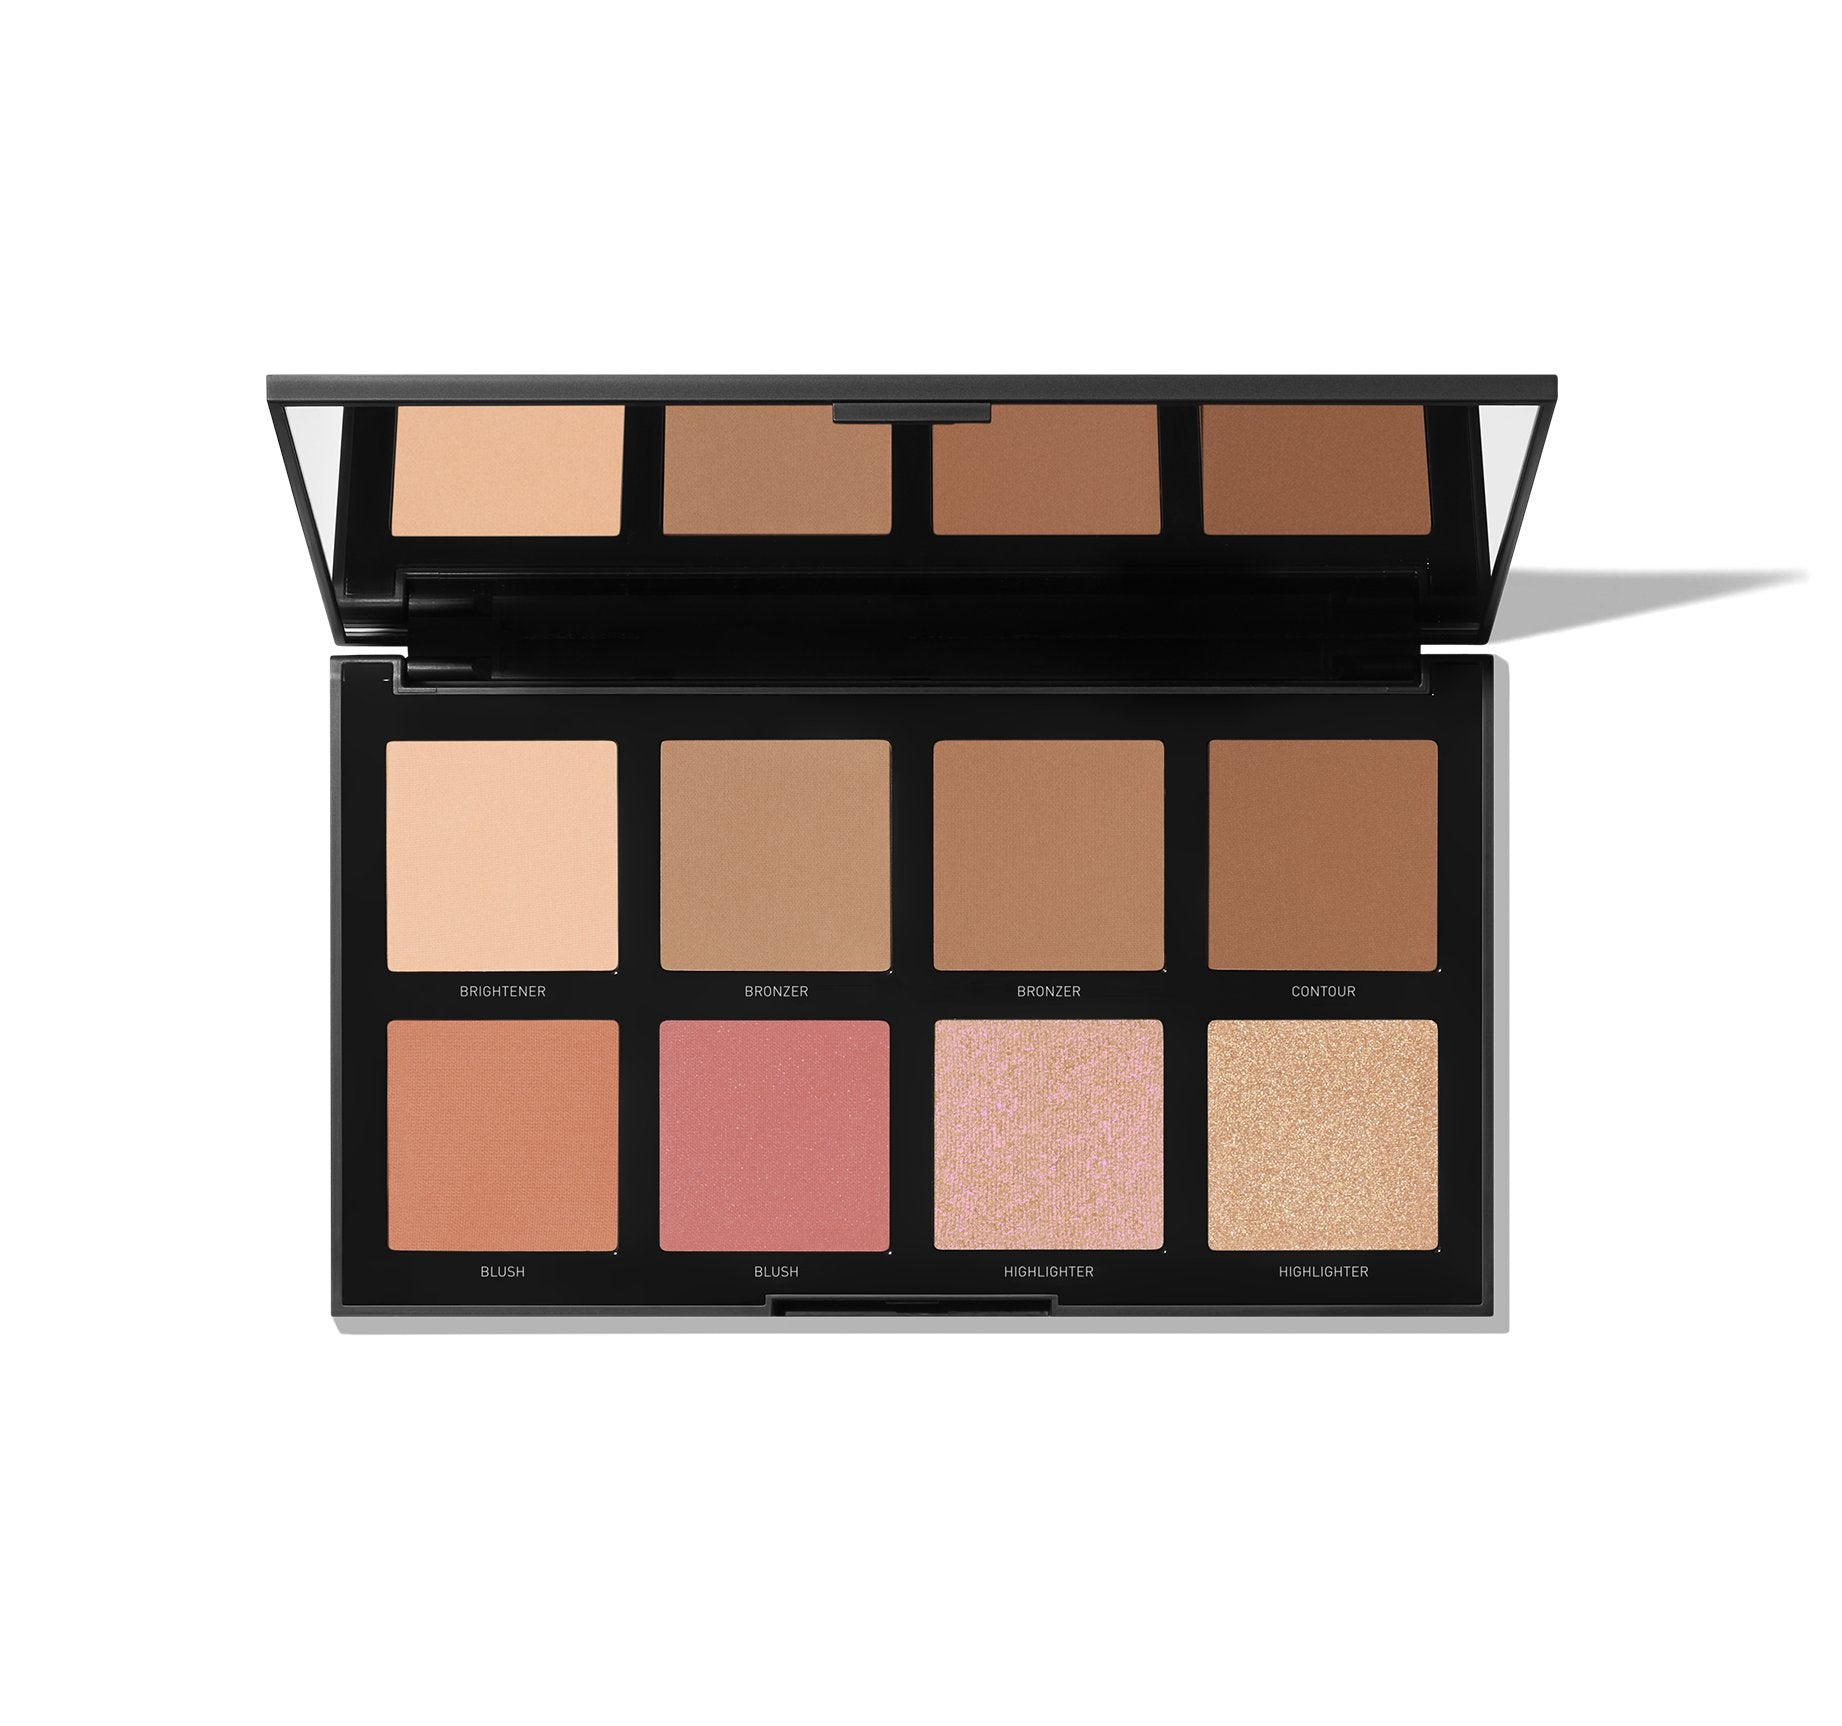 8F FAIR PLAY FACE PALETTE, view larger image